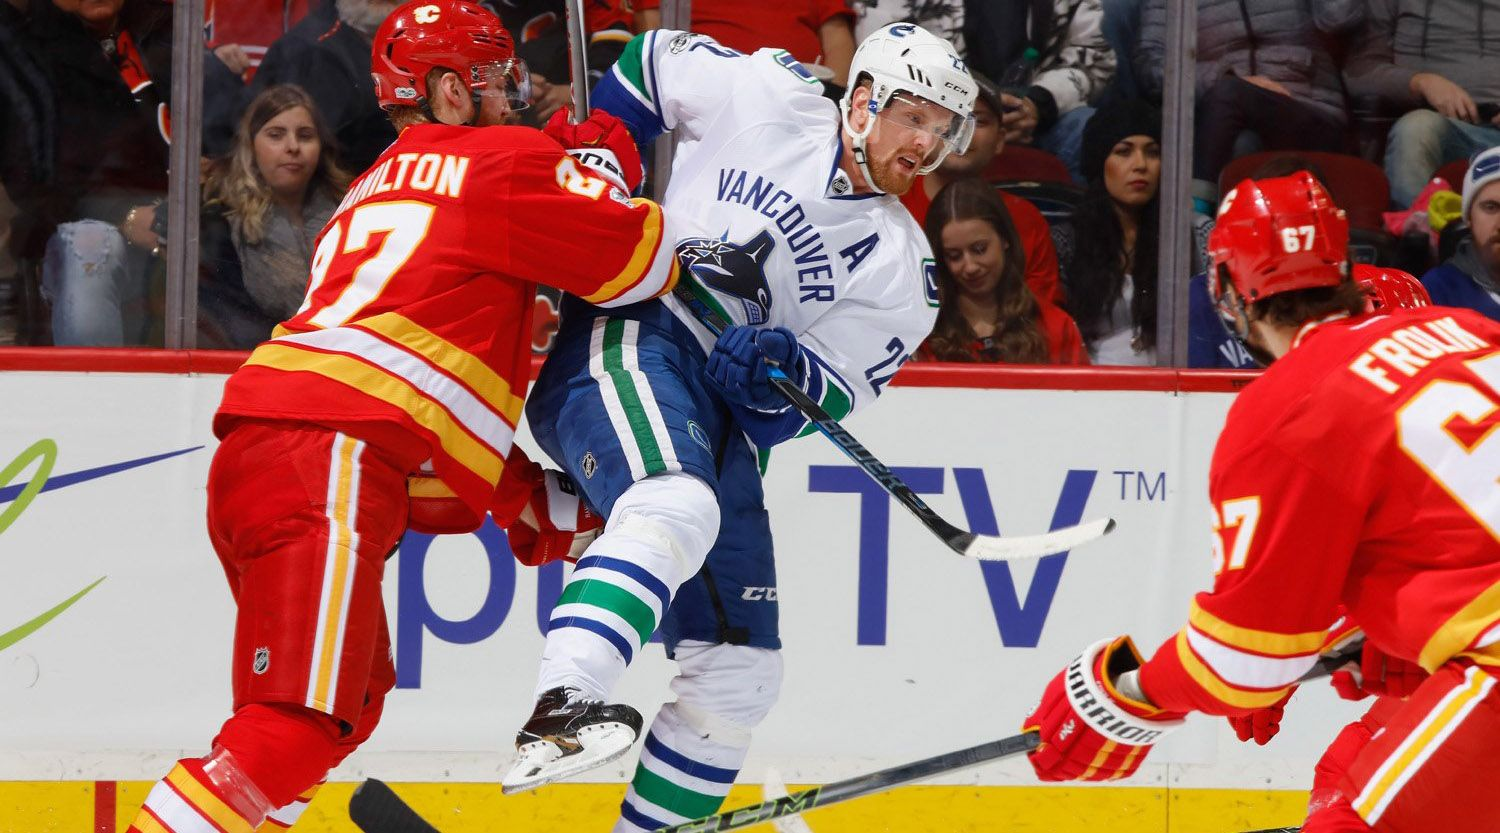 SixPack: Canucks winning streak ends while Rodin doesn't get a shift in Calgary